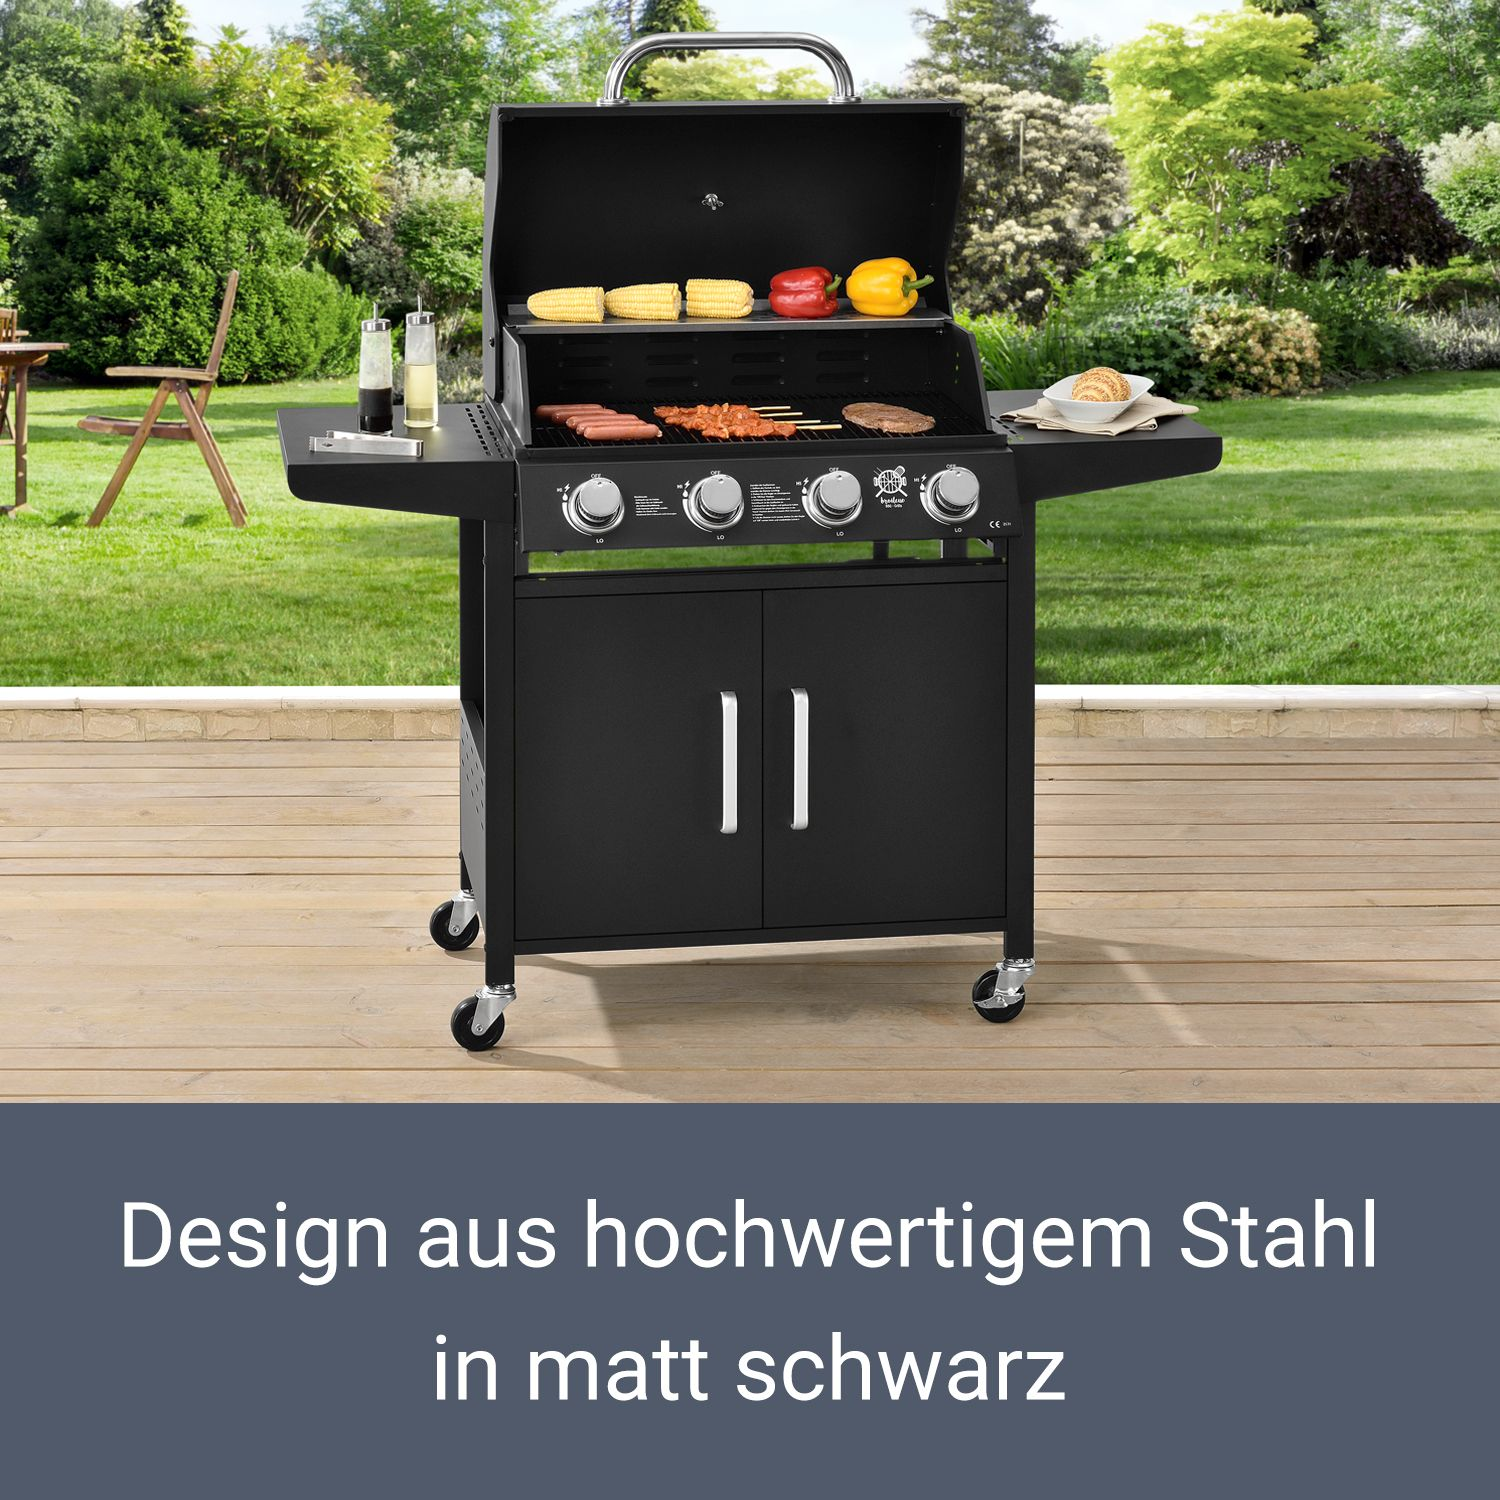 bbq grillwagen gasgrill idaho edelstahl barbecue garten grillen broilcue ebay. Black Bedroom Furniture Sets. Home Design Ideas